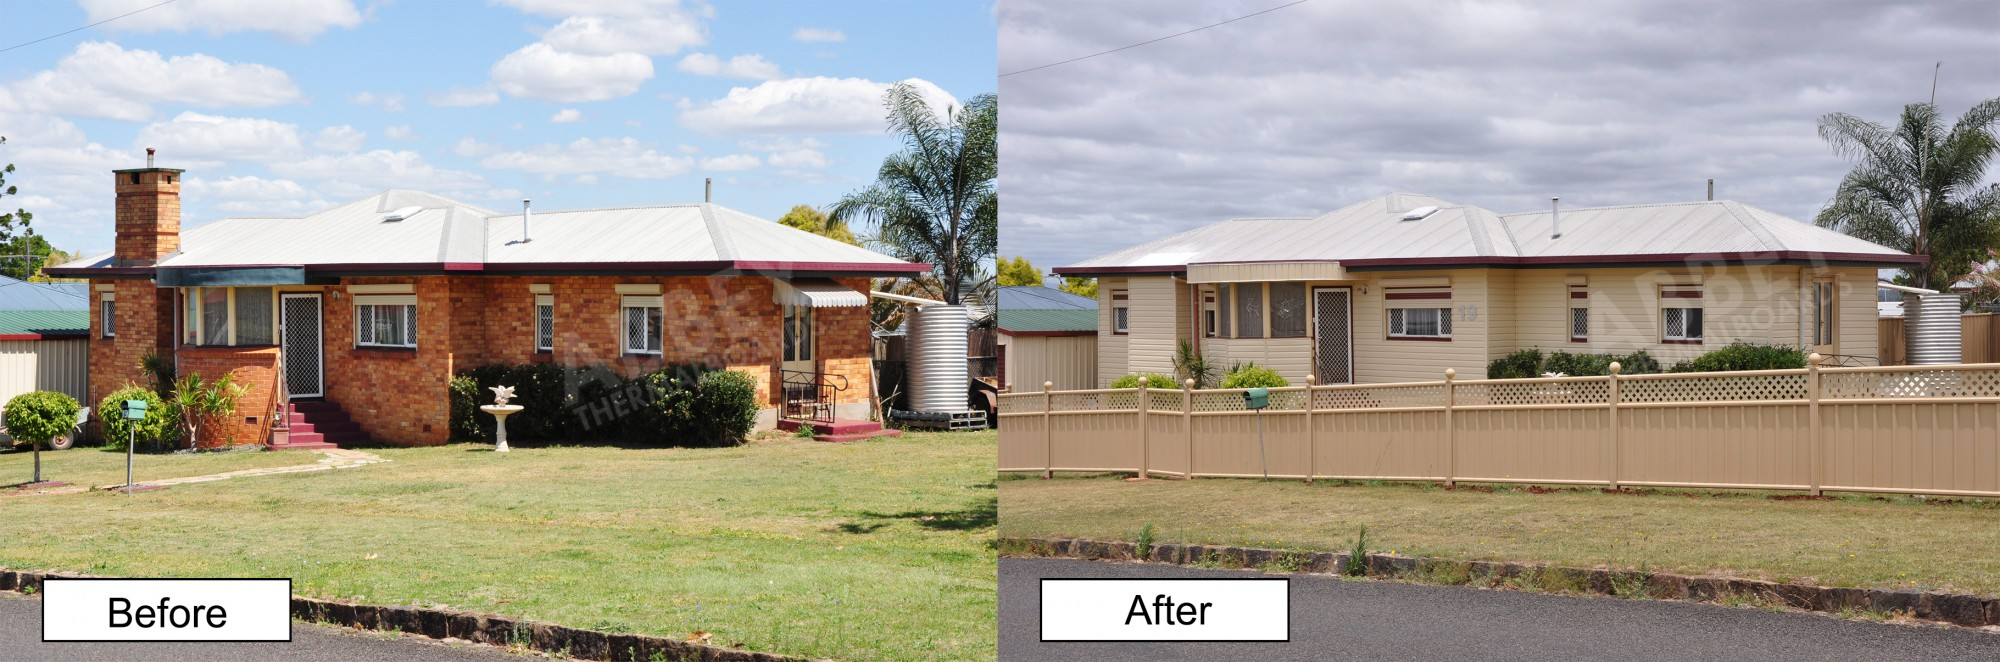 Before and after of a house that we completed with new vinyl cladding.